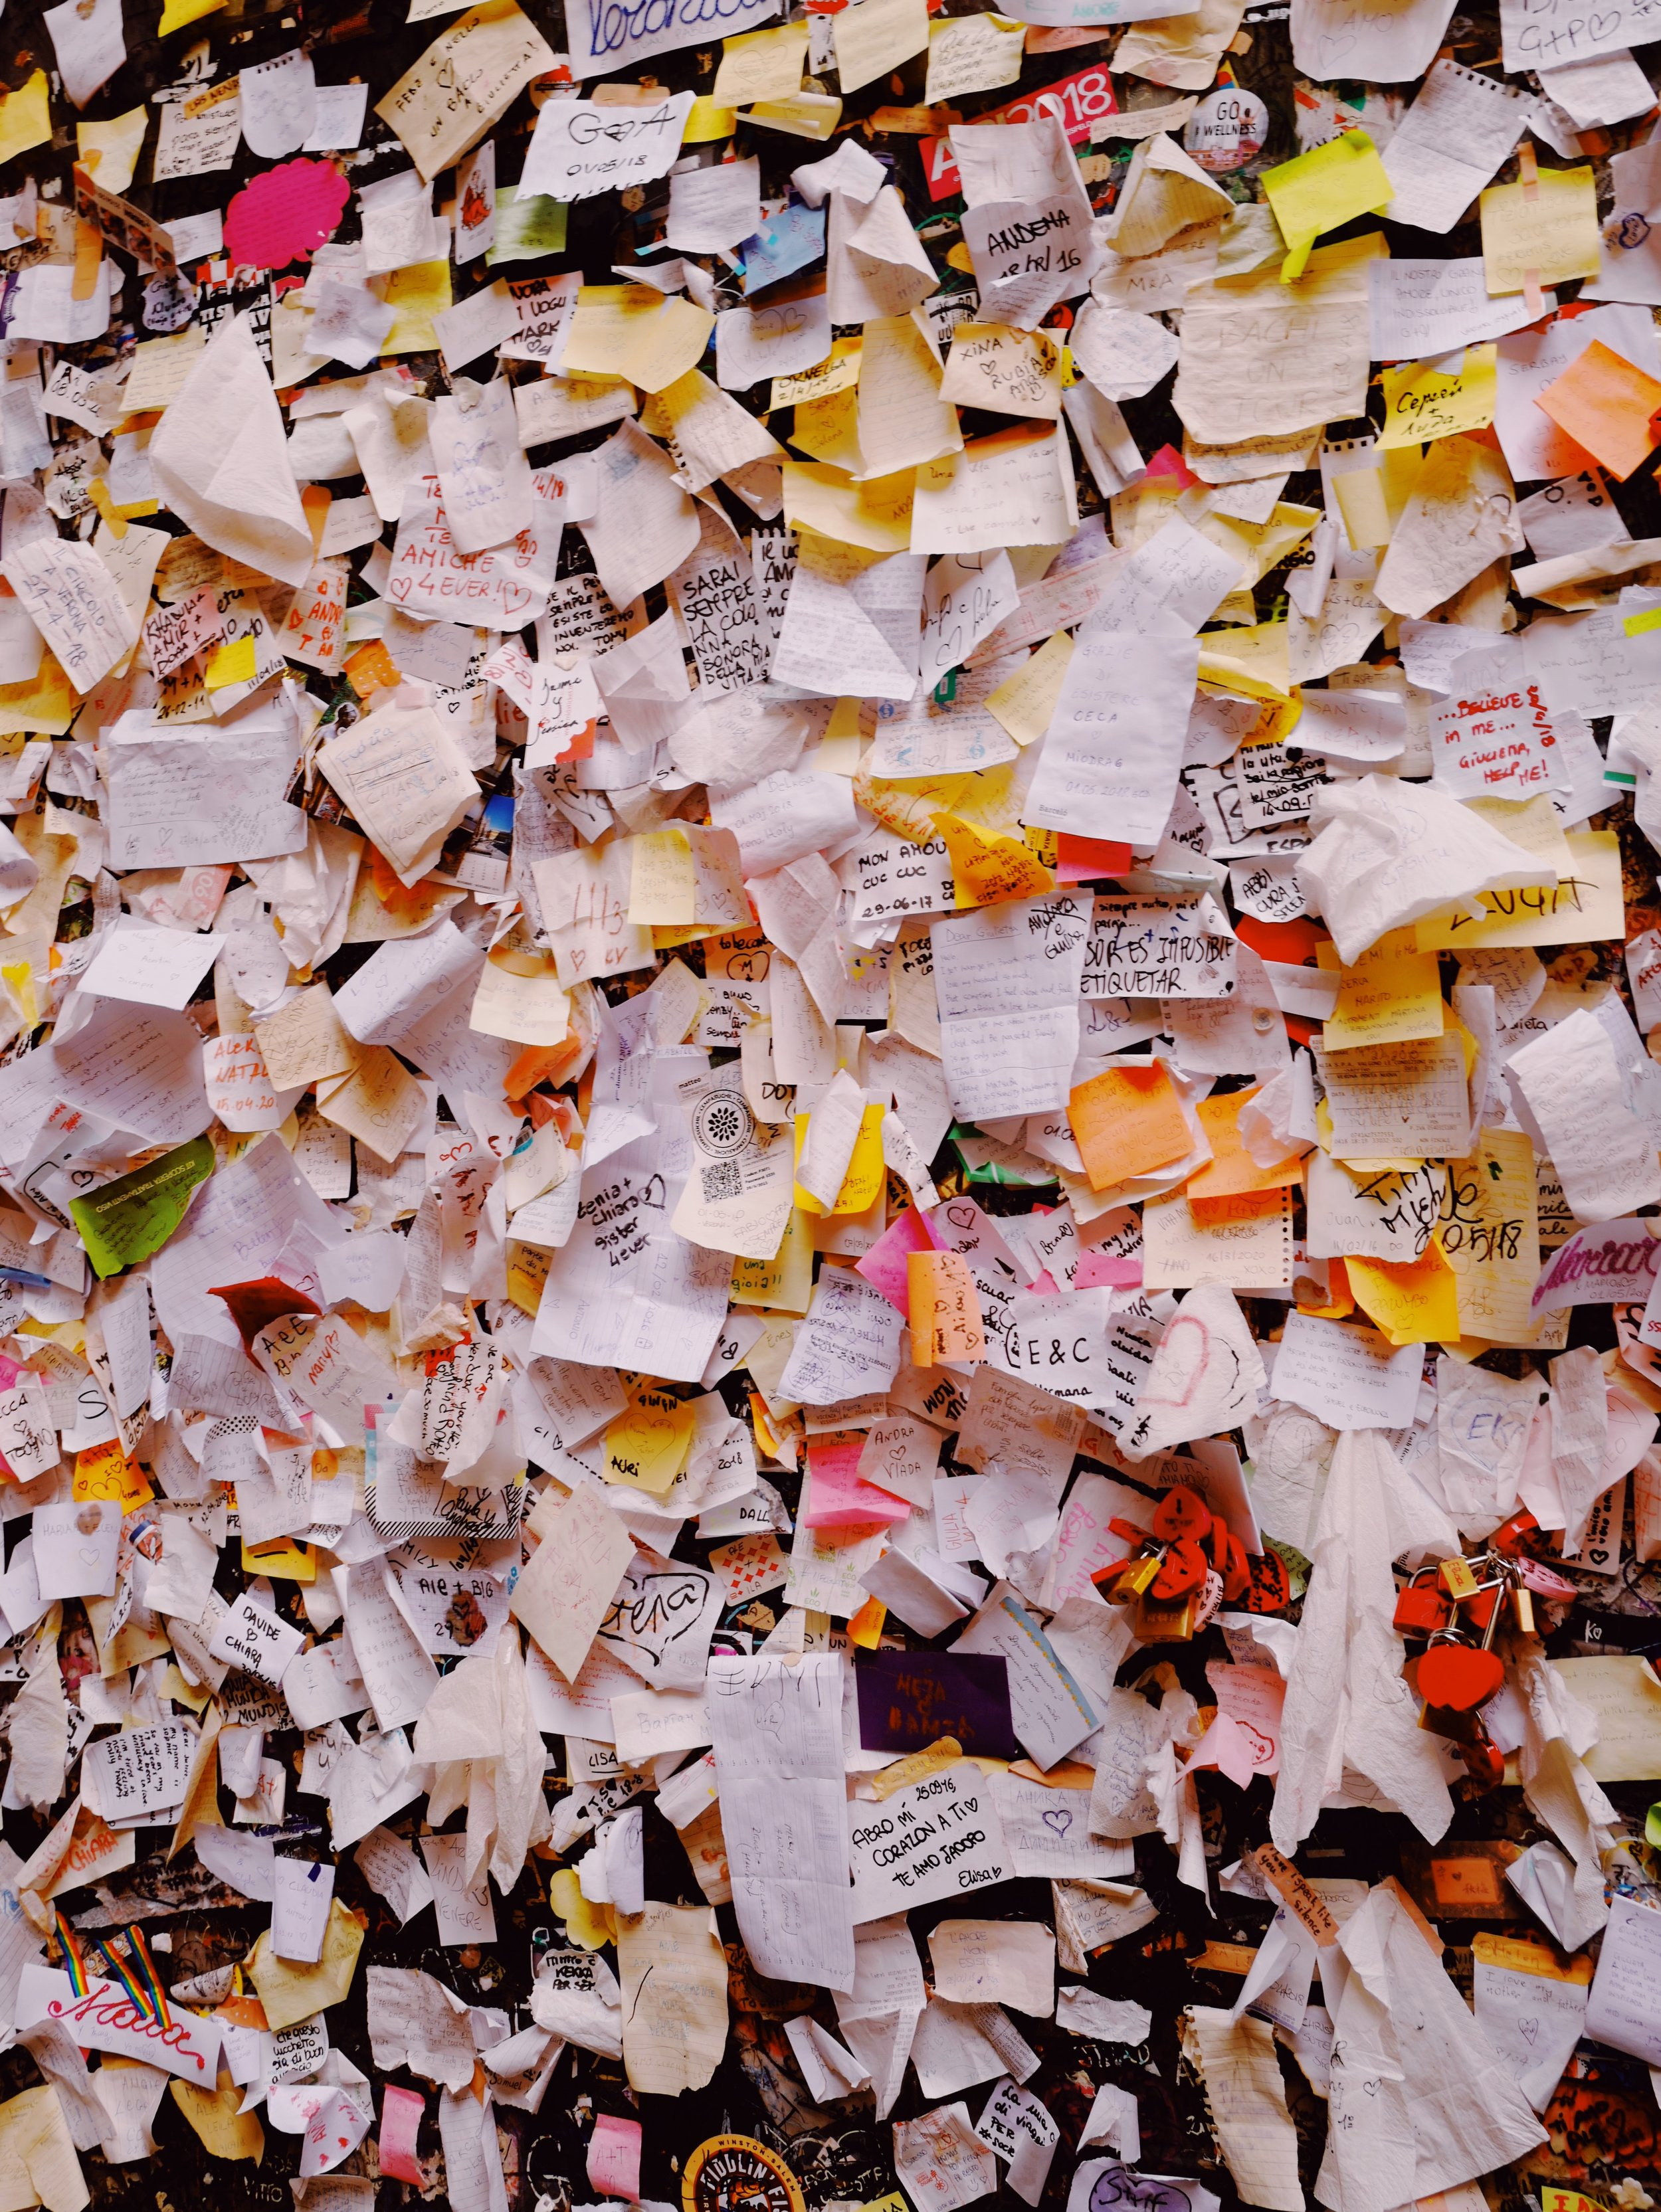 Love letters addressed to Juliet. These letters are replied to by the local organization called  Club di Giulietta  (funded by the city of Verona).